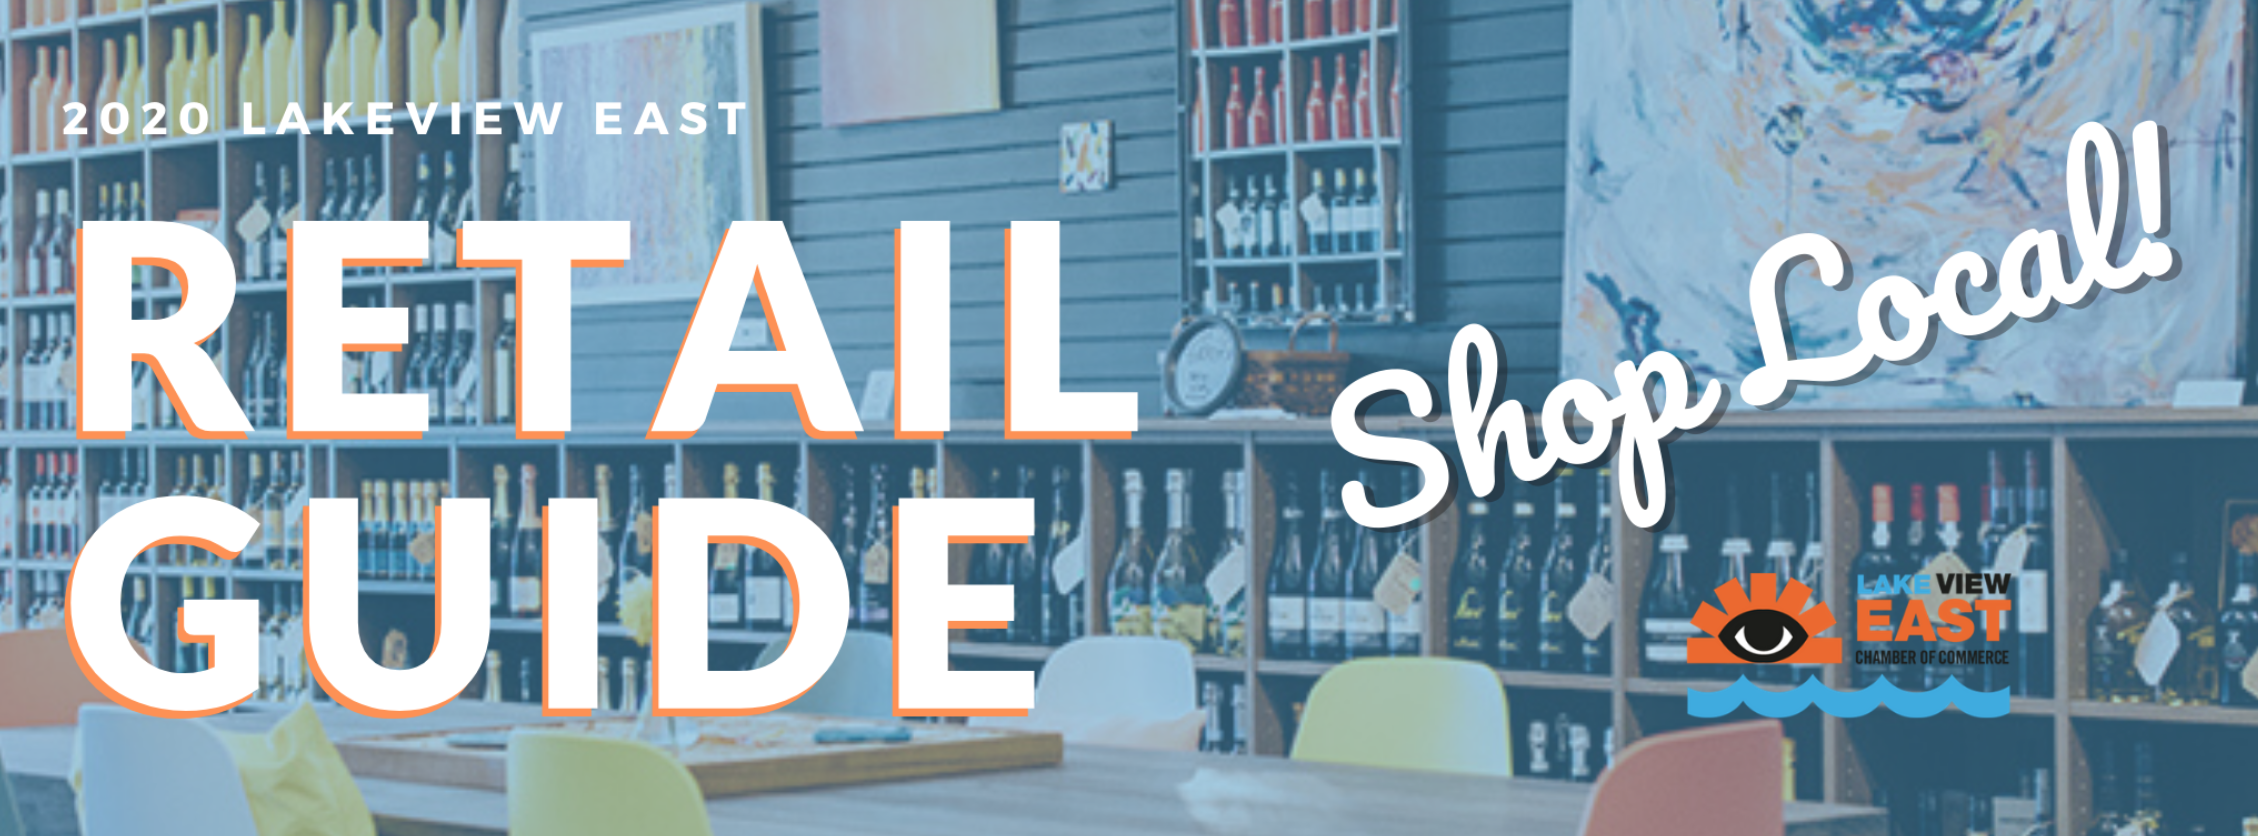 lakeview east retail guide